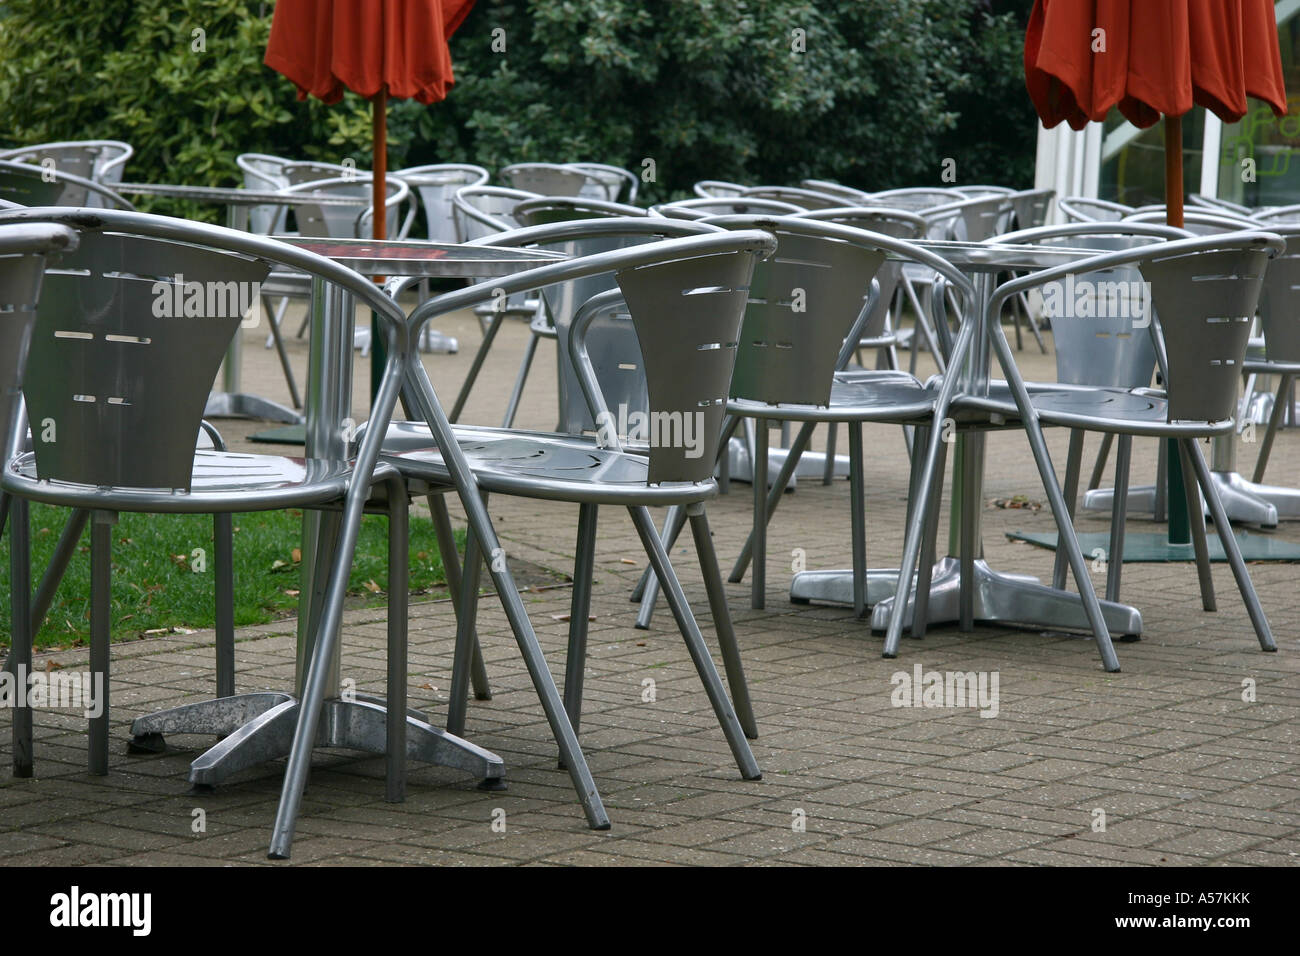 Silver Patio Furniture.Silver Patio Chairs Stock Photo 11224086 Alamy